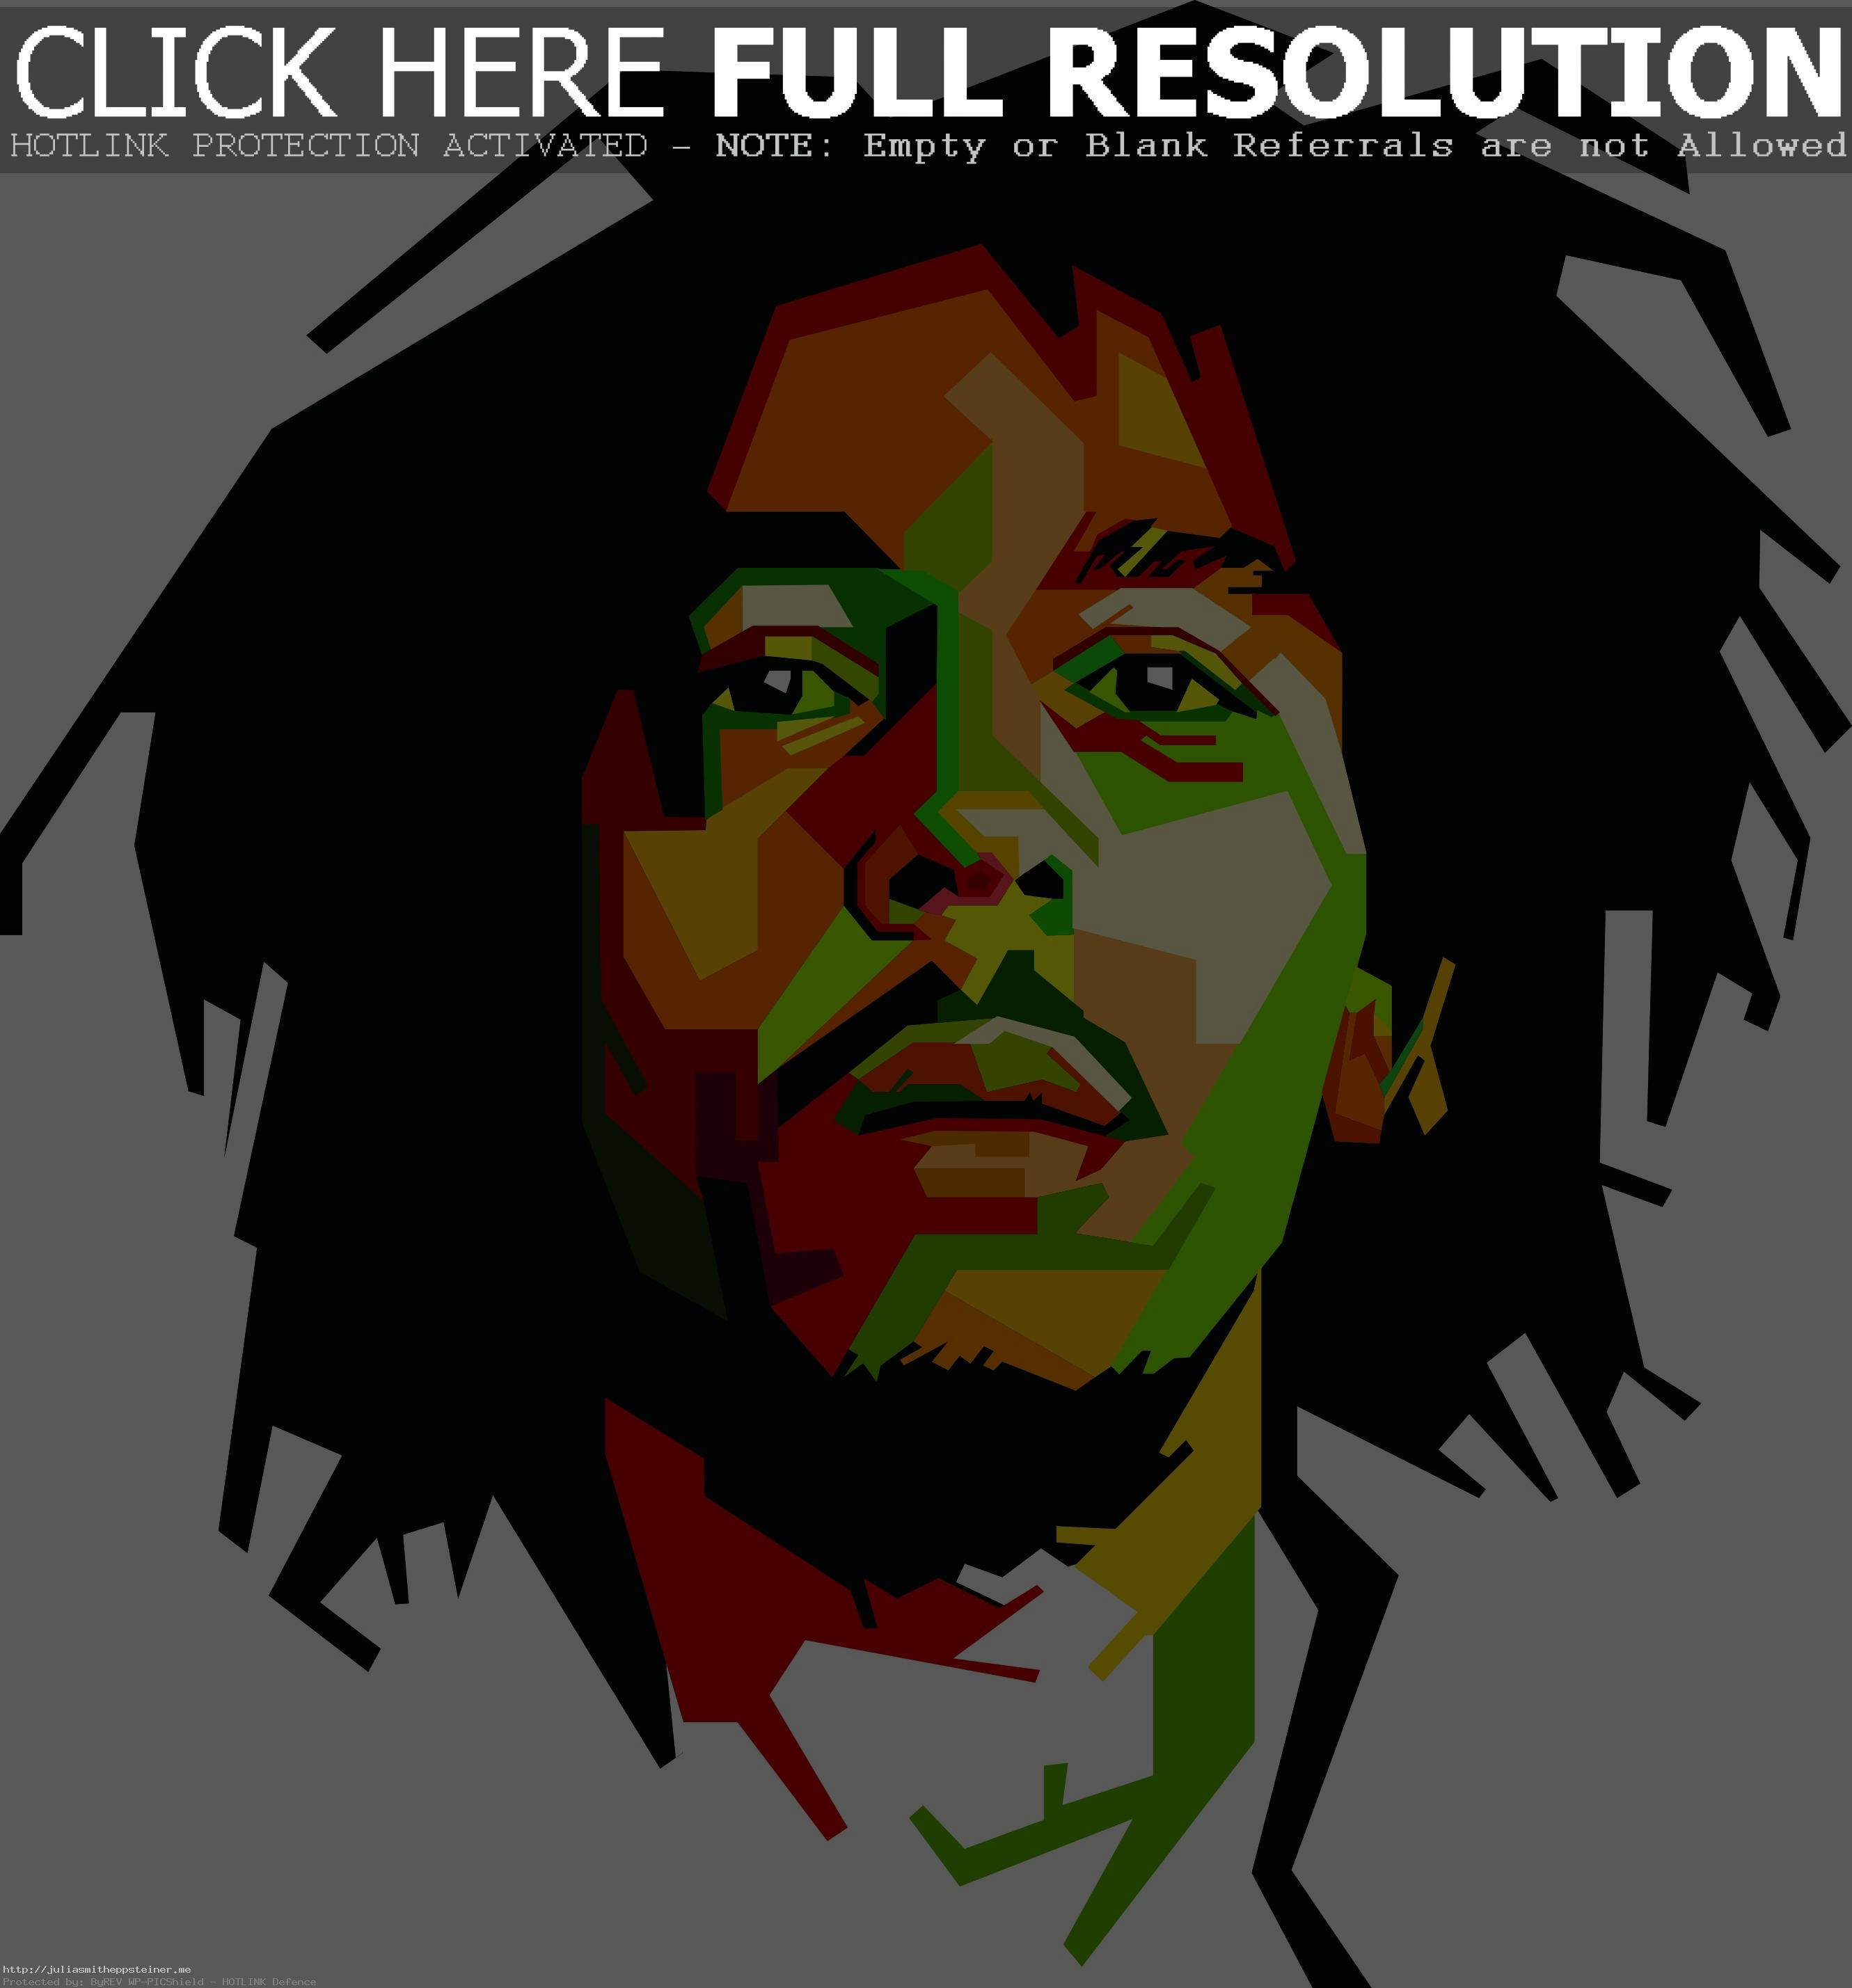 Pin By C T On Bob Marley Pinterest And B-Pin By C T On Bob Marley Pinterest And Bobs Beautiful-18